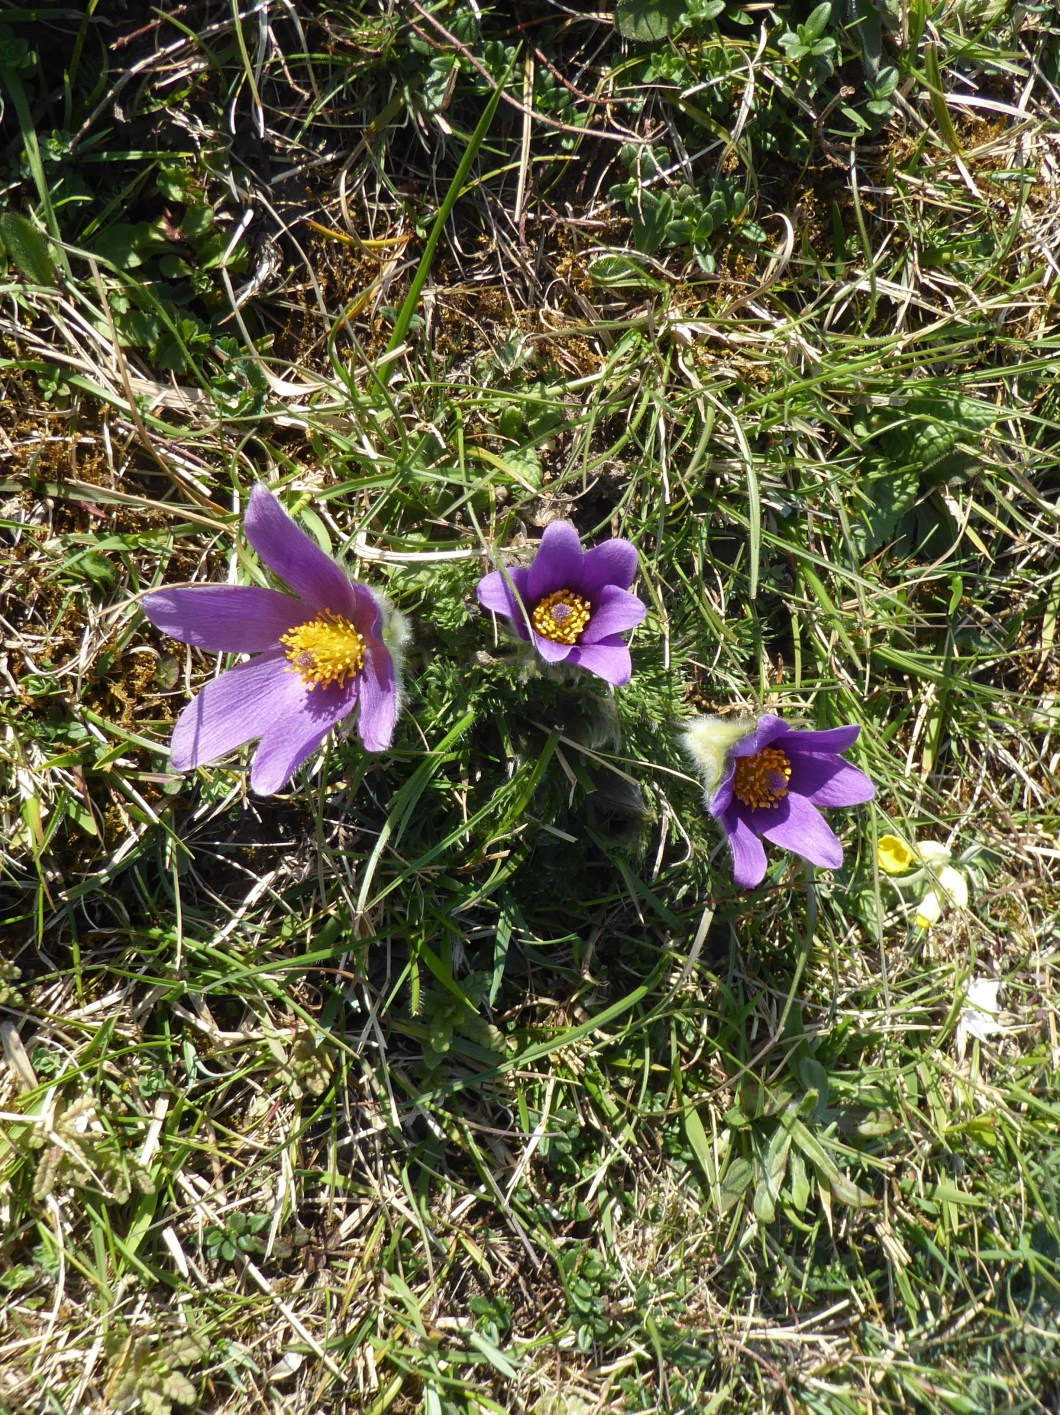 PasqueFlower_Ledsham_16Apr2020